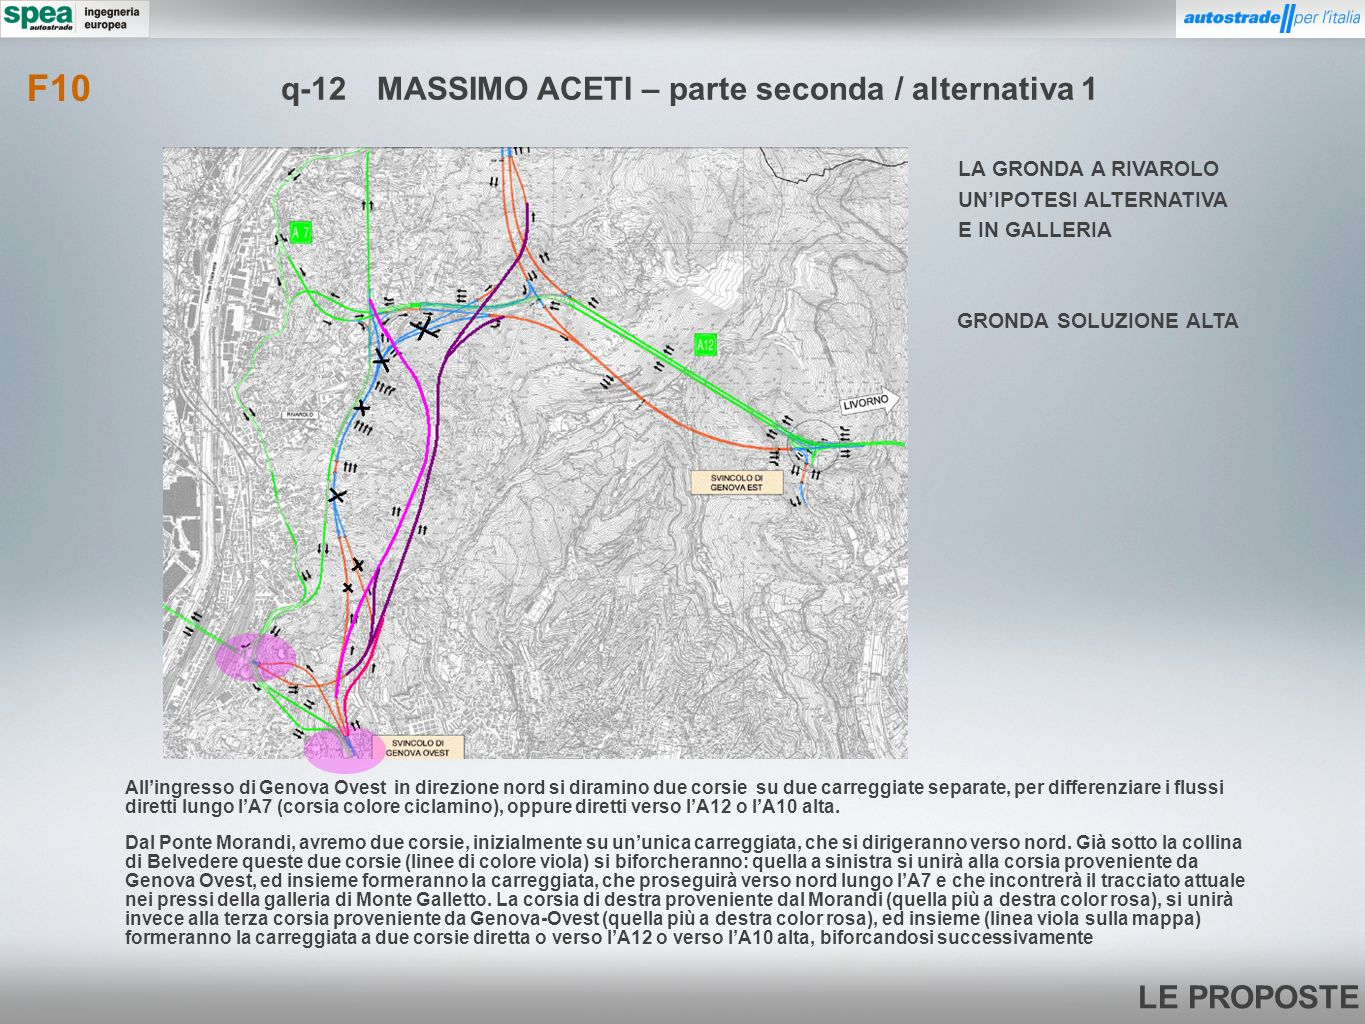 q-12 MASSIMO ACETI – parte seconda / alternativa 1